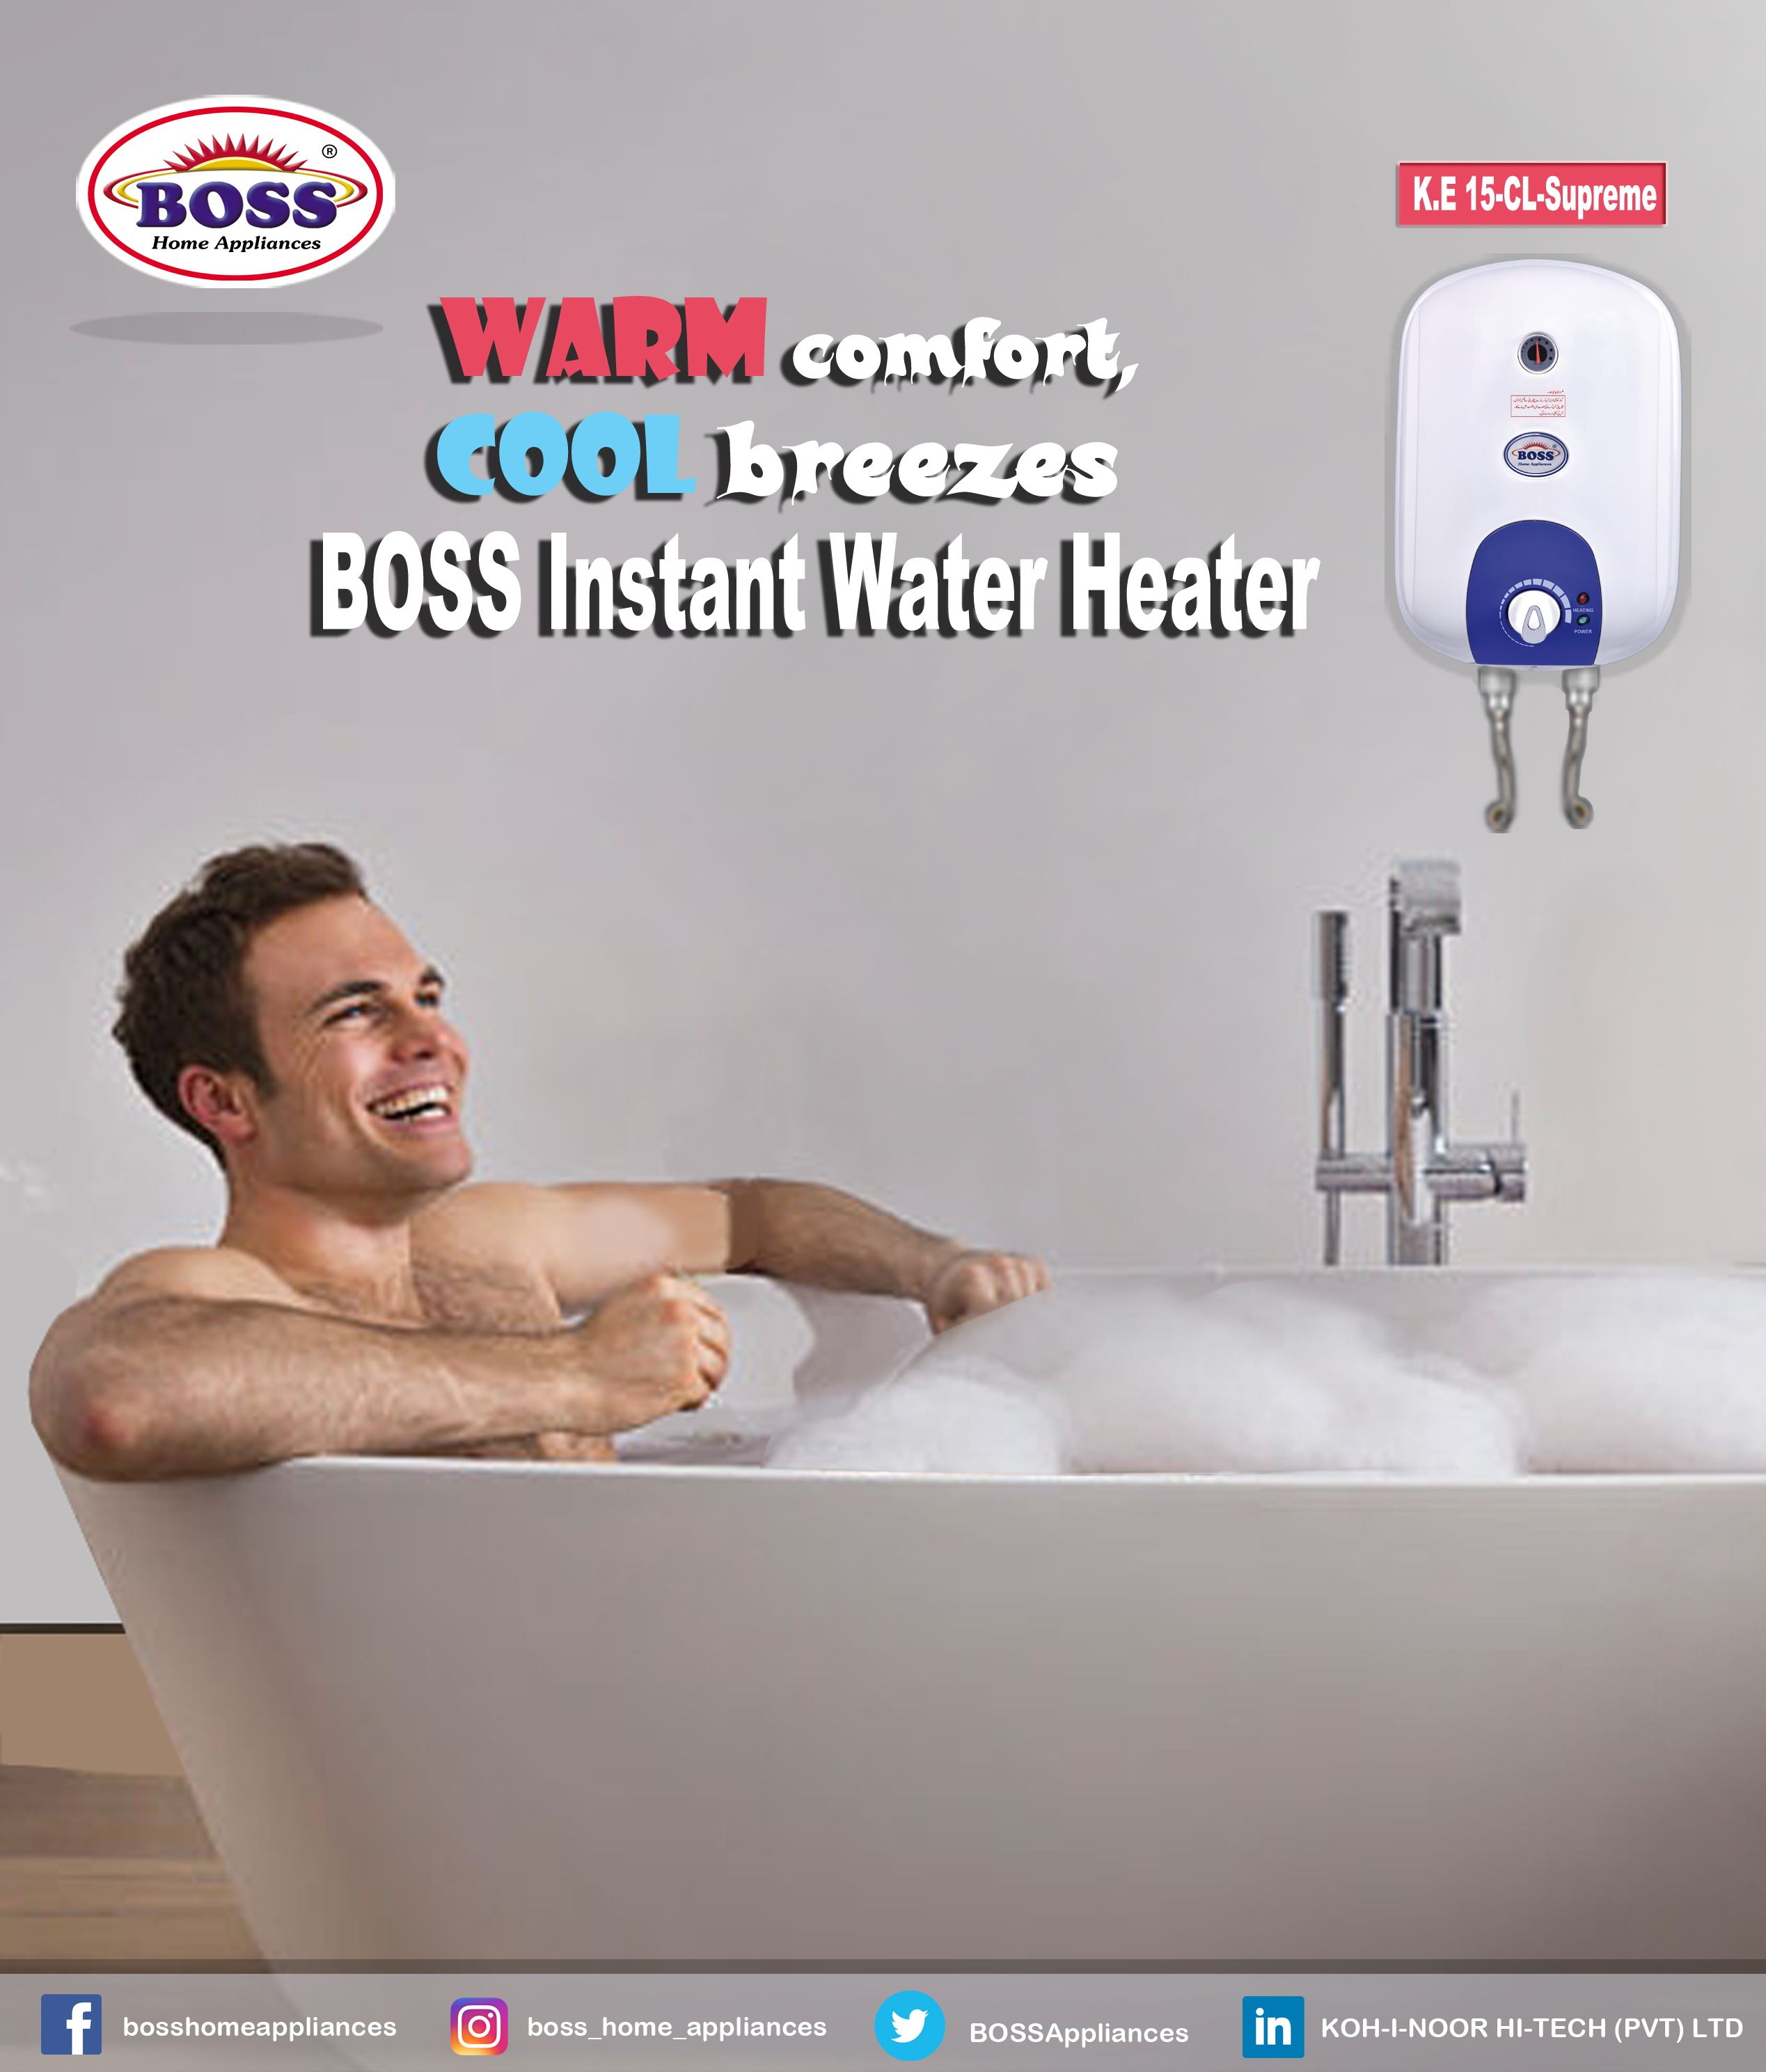 Pin By Boss Home Appliances On Products Instant Water Heater Water Heater Home Appliances